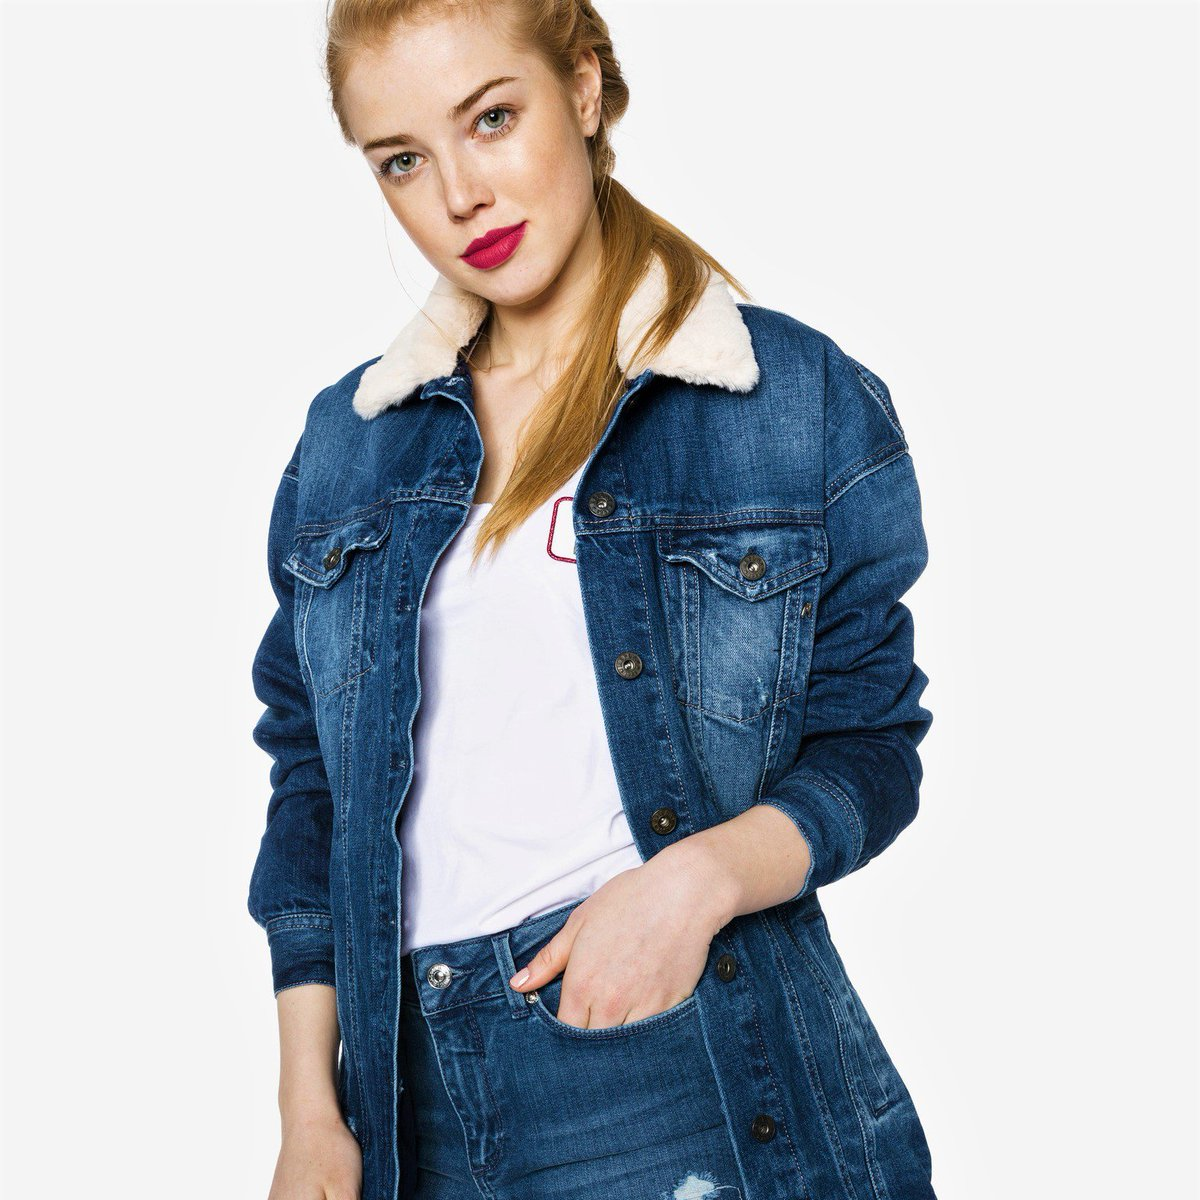 Would you love to have this REPLAY jacket in your wardrobe? 💞🛍 Just today with sale 50 % off on BIBLOO❗️https://t.co/opYFkfD7Ot https://t.co/hYFaCIFY0I